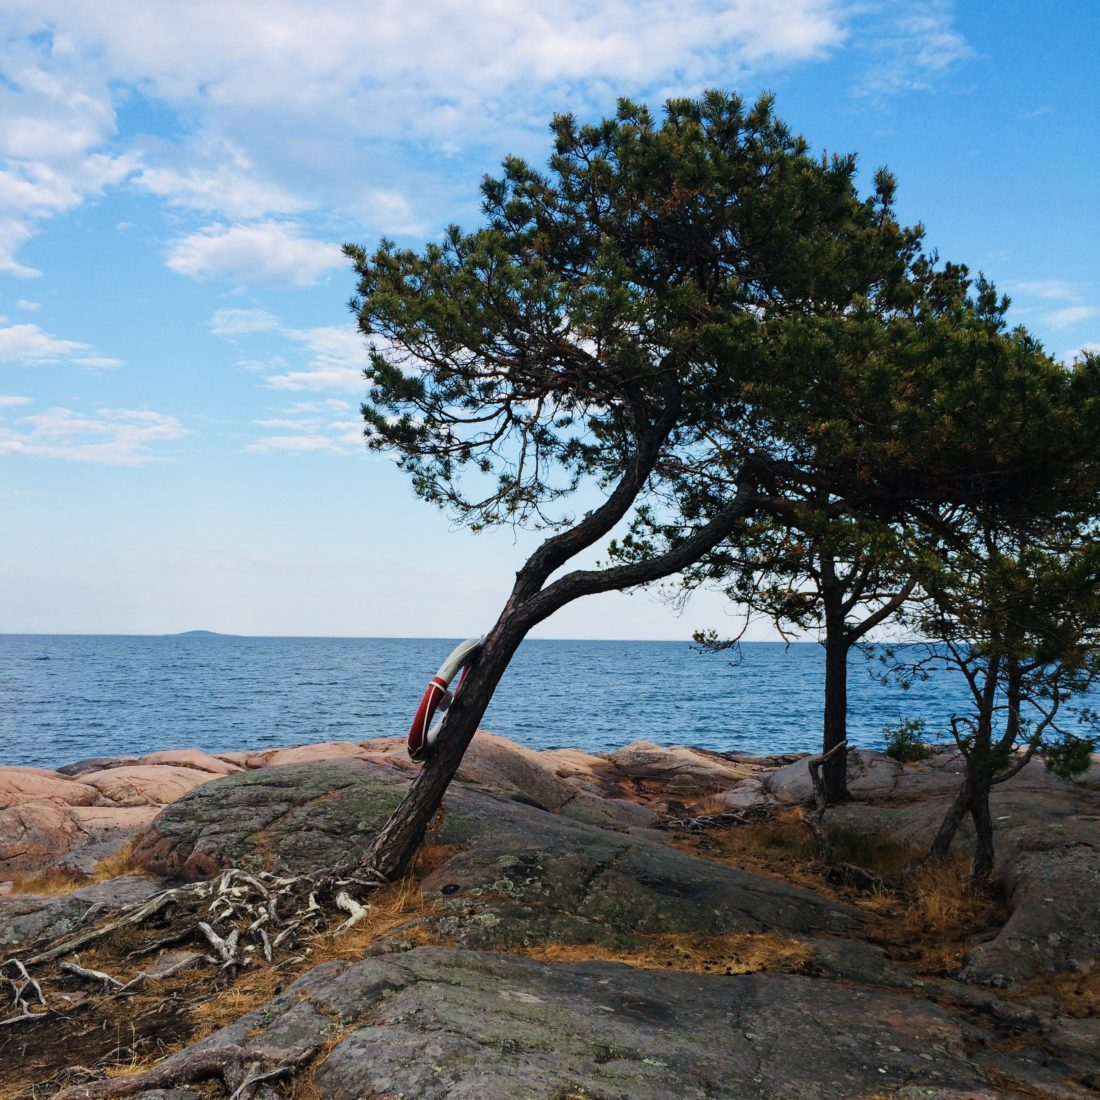 Baltic Sea/ Credit: Katharina